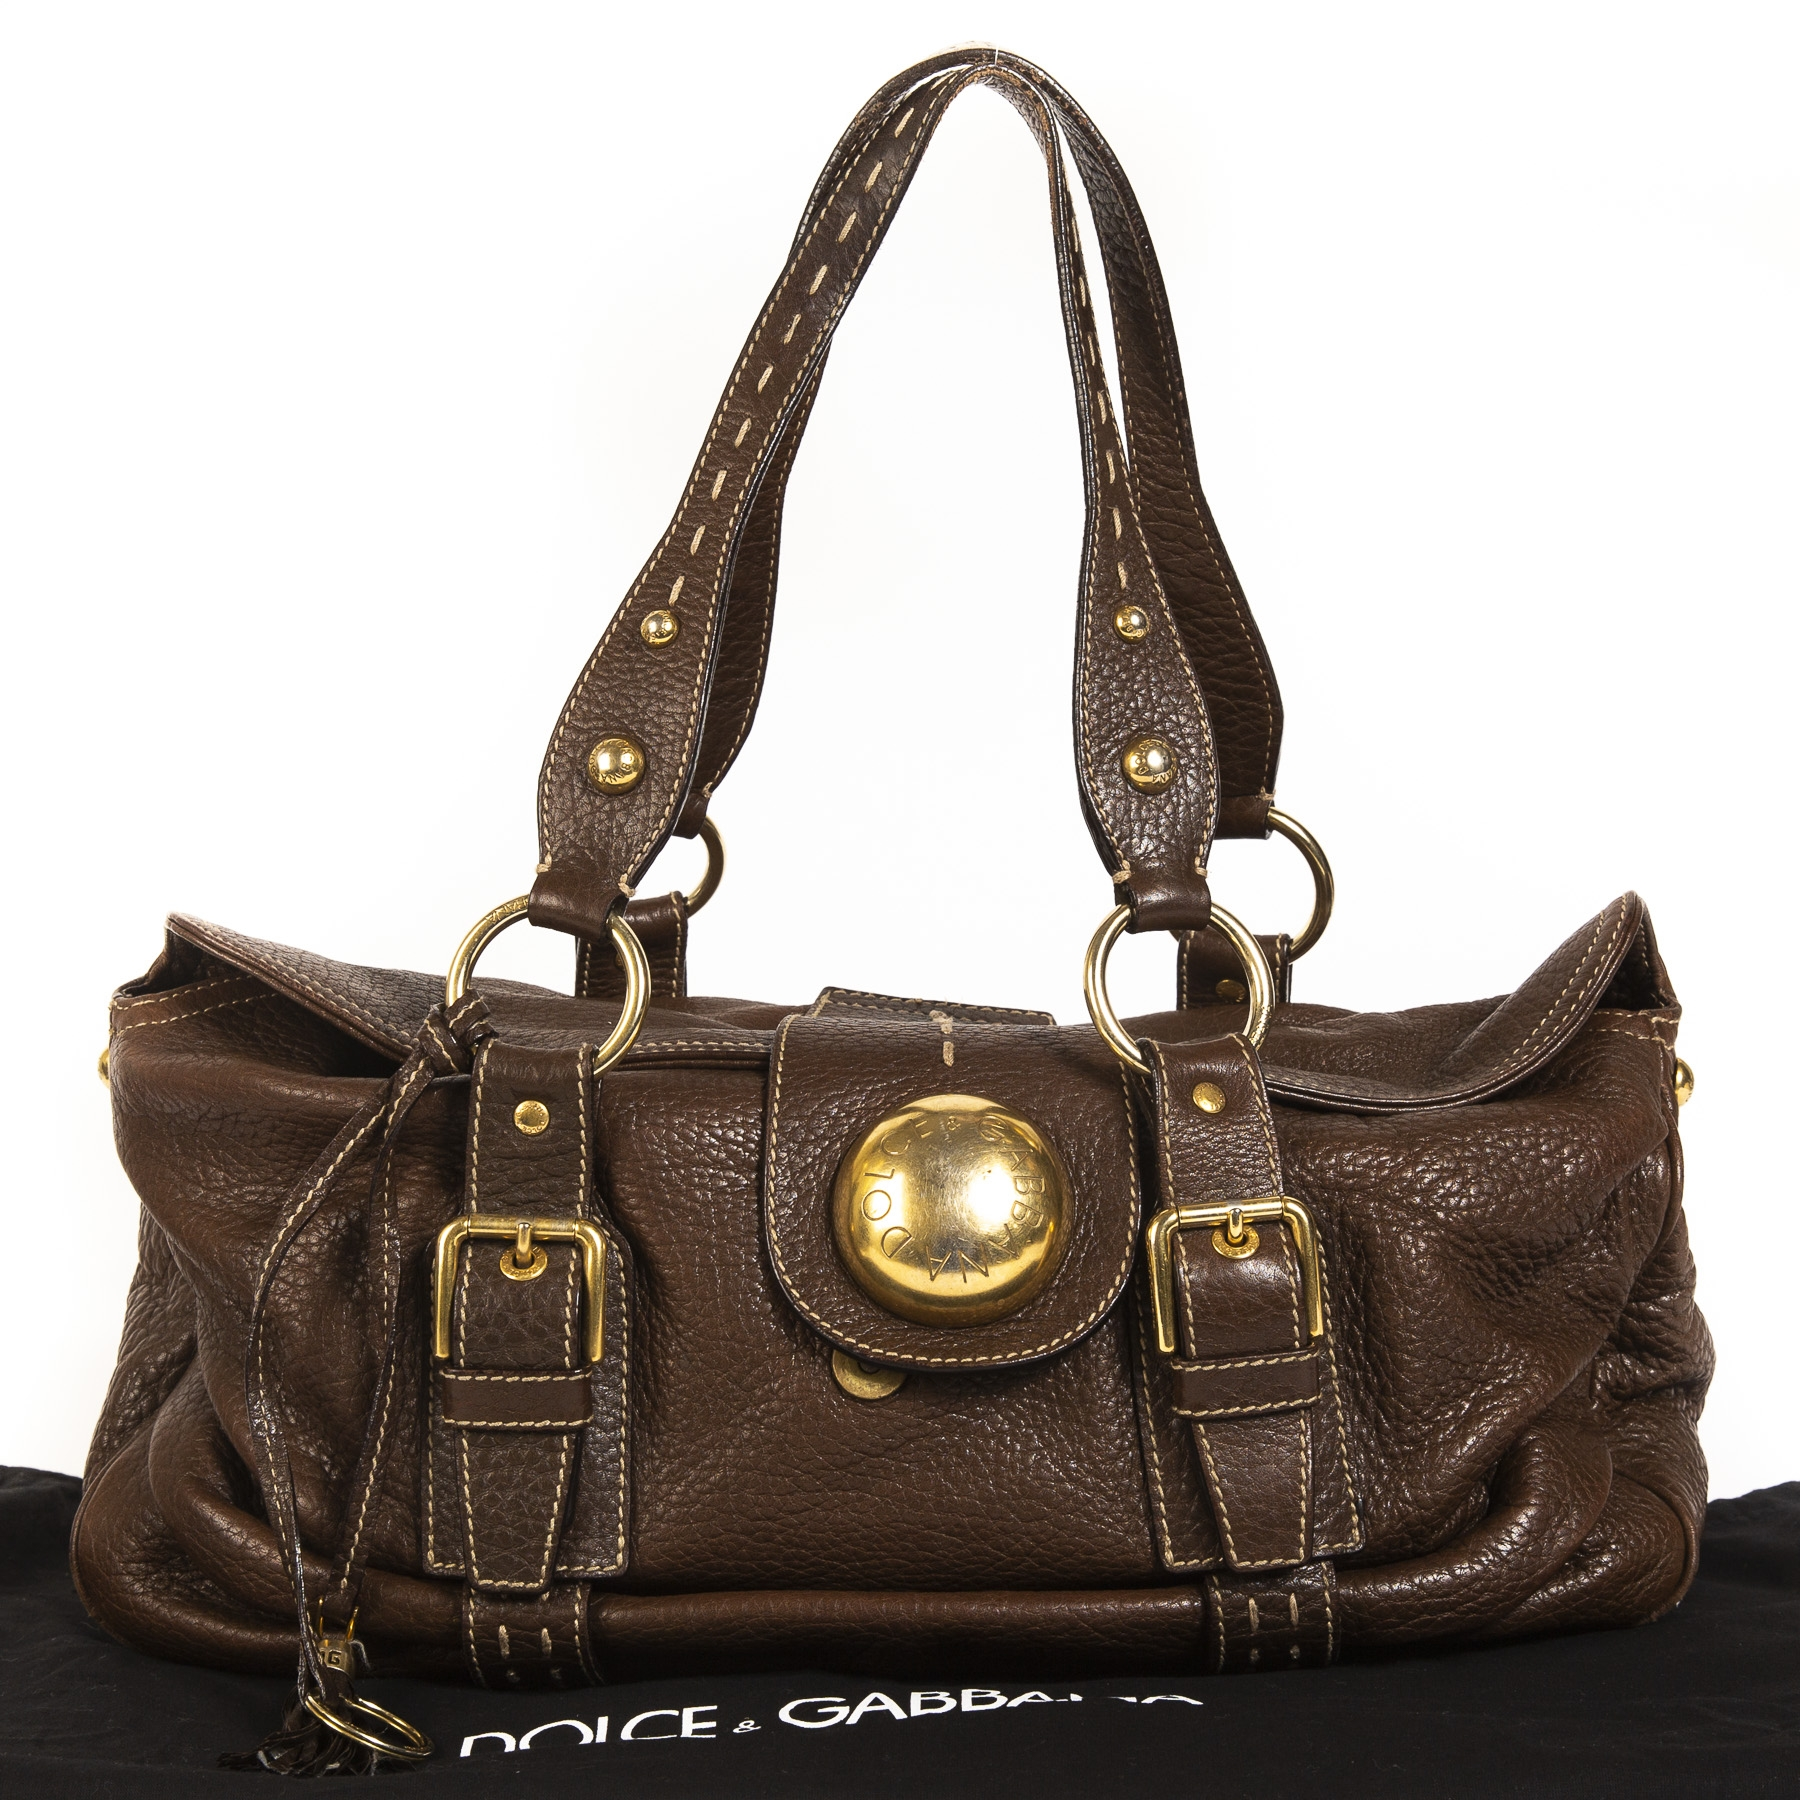 acheter en ligne seconde main Dolce & Gabbana Brown Leather Shoulder Bag